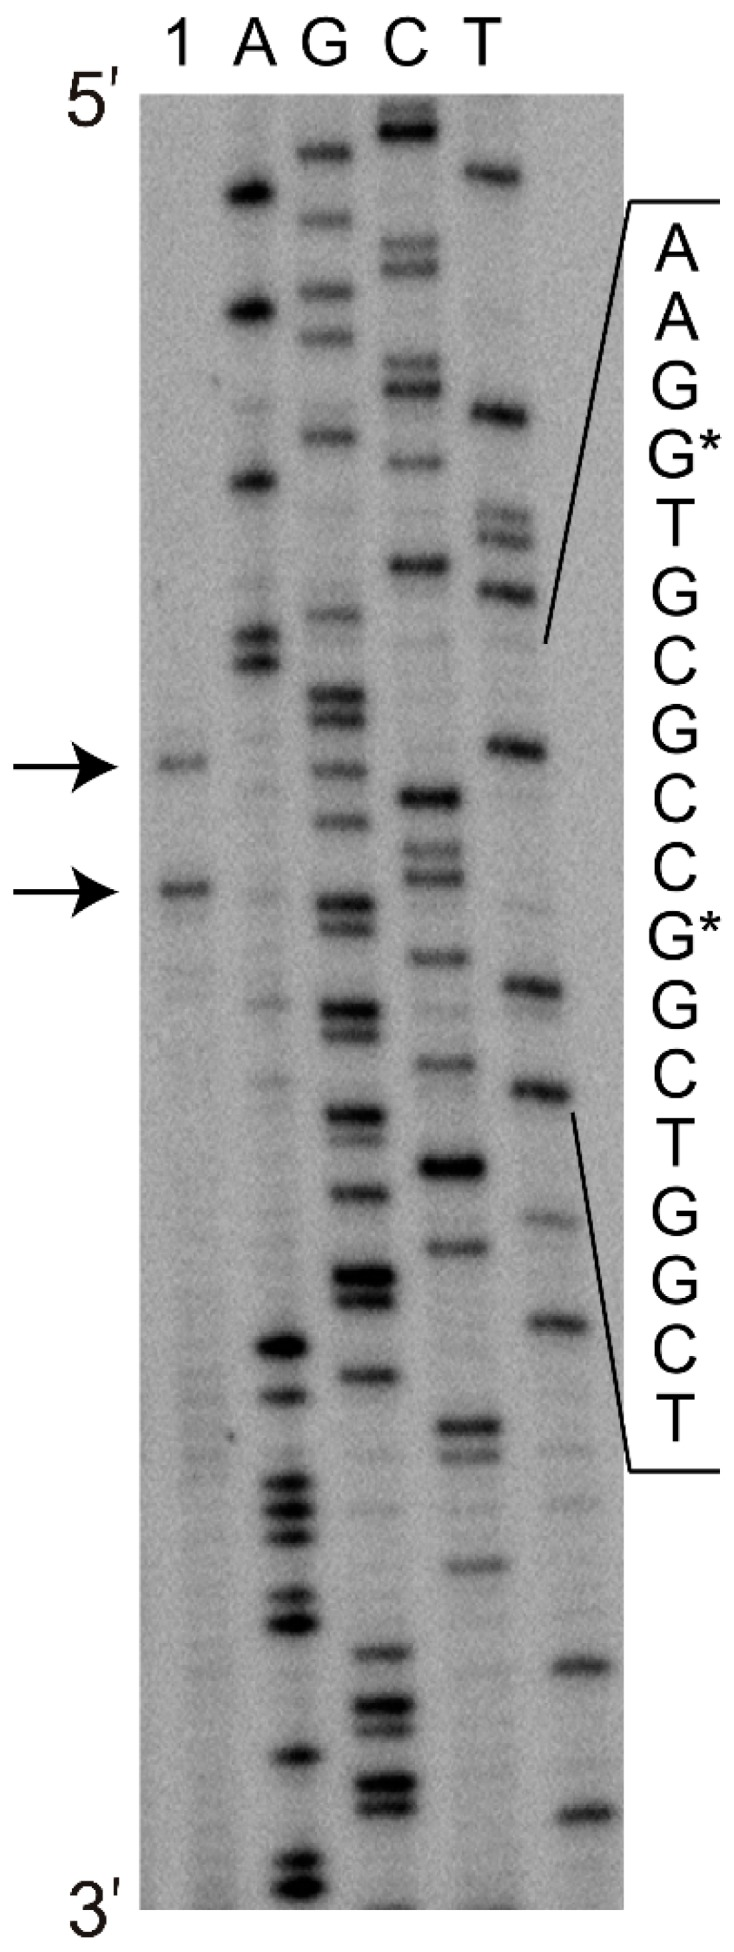 Determination of the transcription start site by primer extension analysis using the total RNA from R. jostii TMP1 harbouring the pART3-5′UTR-gfp plasmid. The extended product was analysed alongside a DNA sequencing reaction, using the same primer. The transcription initiation sites are indicated by arrows, and the corresponding nucleotides in the DNA sequence are marked by asterisks.